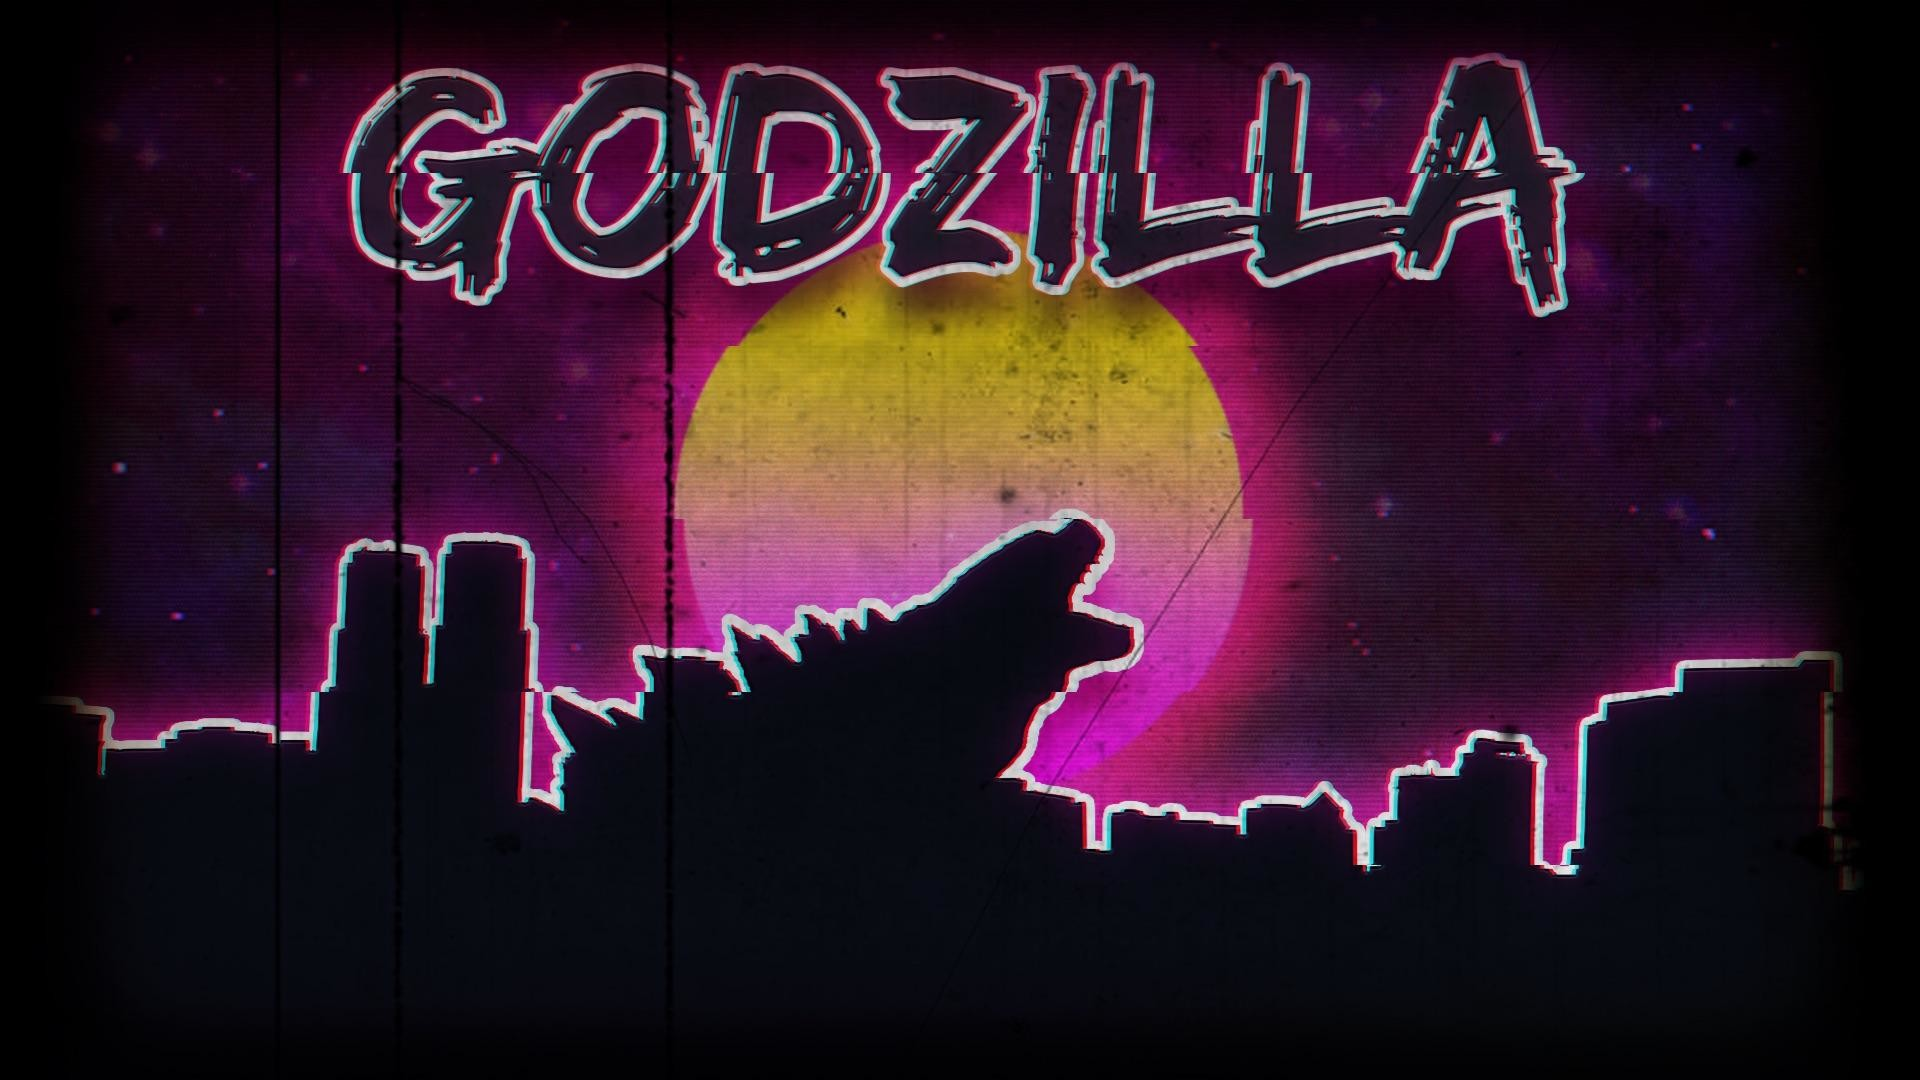 1920x1080 I made thisA retro 80s style godzilla wallpaper I threw together in  photoshop.